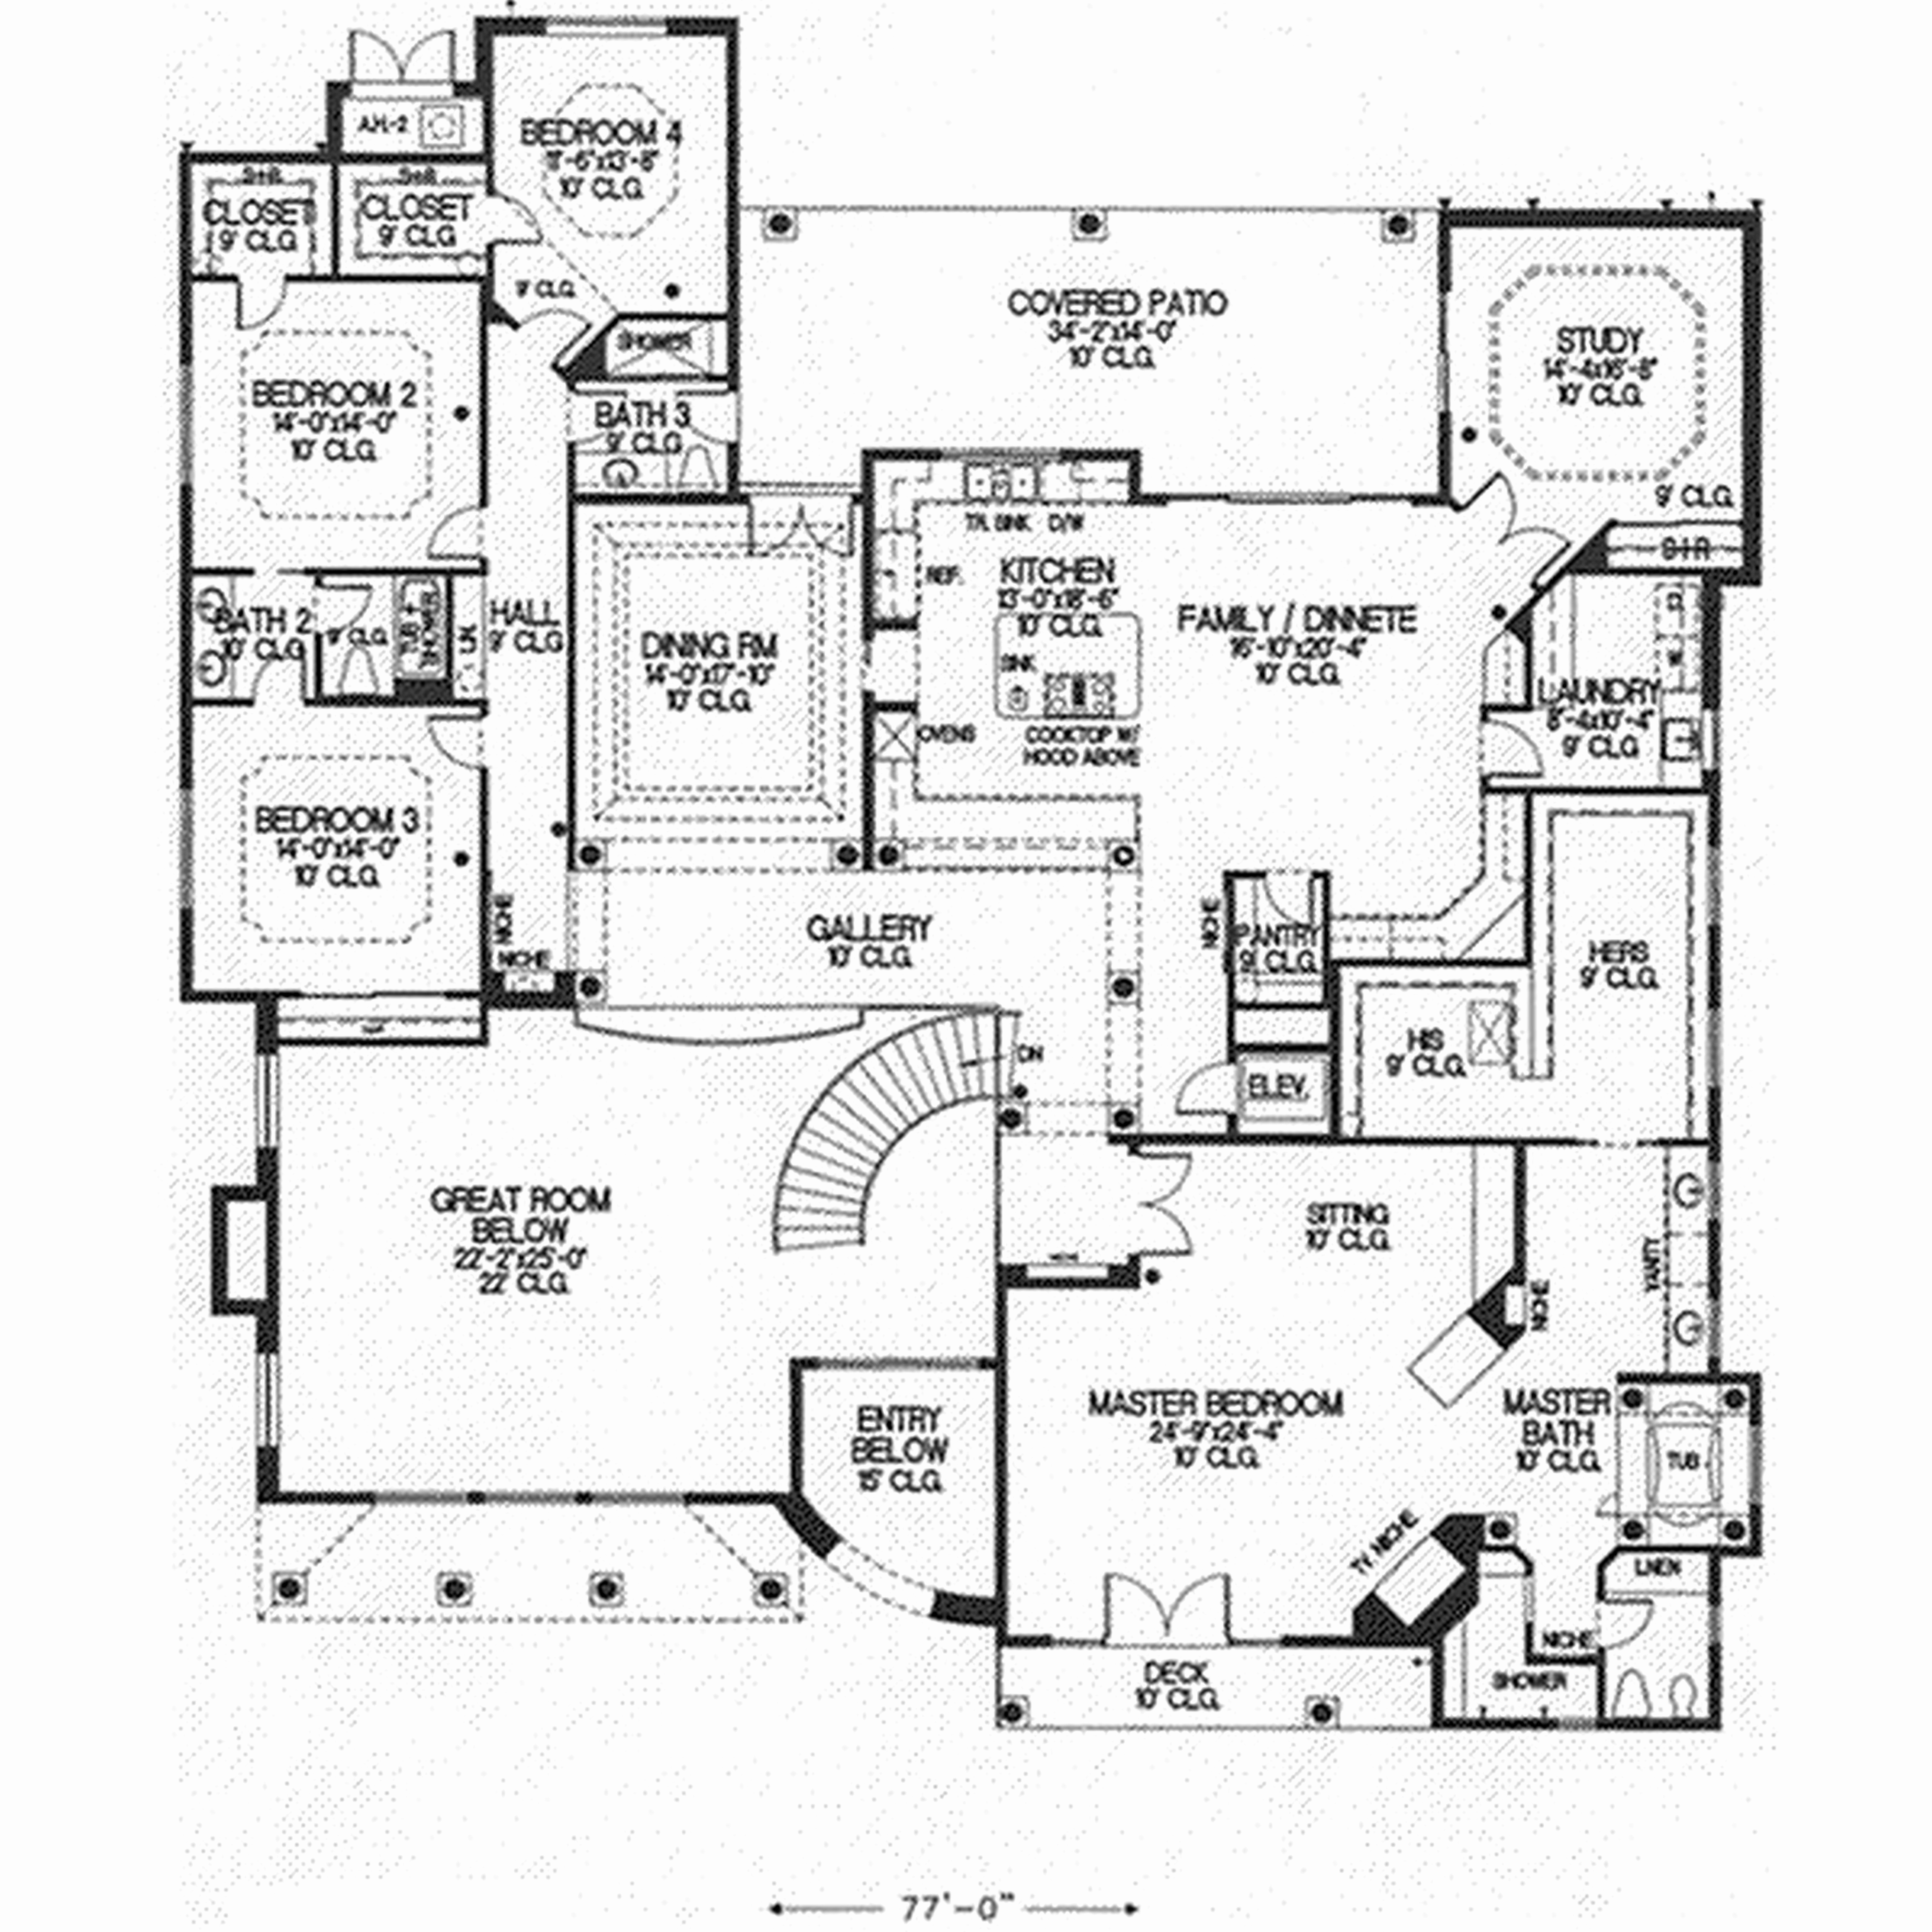 5000x5000 Drawing House Floor Plans Dynex Tv Service Port Filtering Sand Out